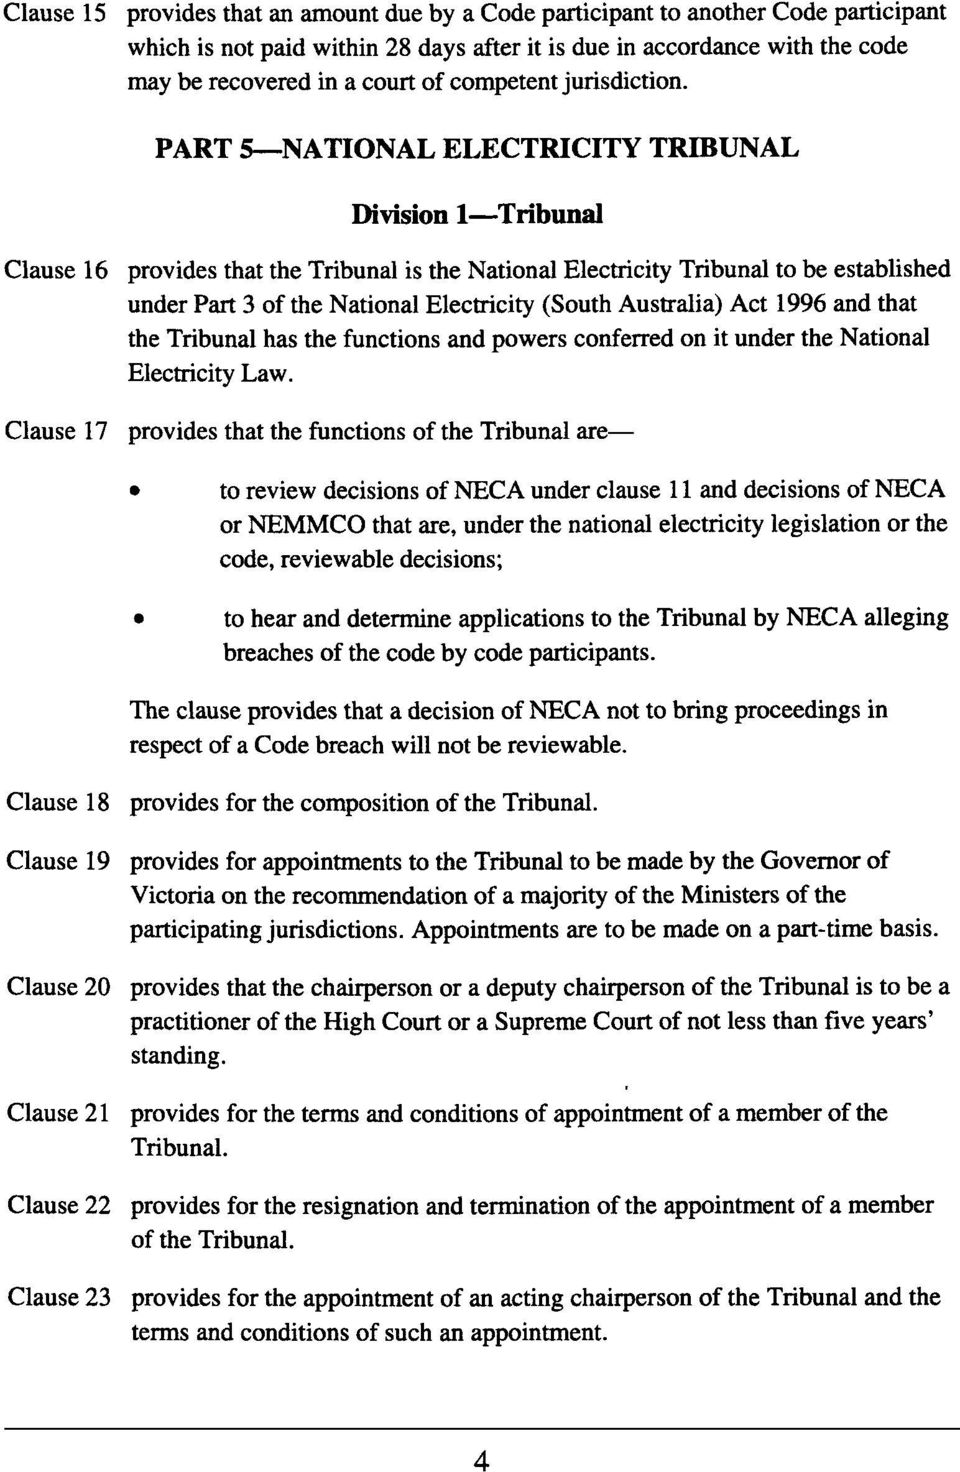 PART S-NA TIONAL ELECTRICITY TRmUNAL Division I-Tribunal Clause 16 provides that the Tribunal is the National Electricity Tribunal to be established under Part 3 of the National Electricity (South